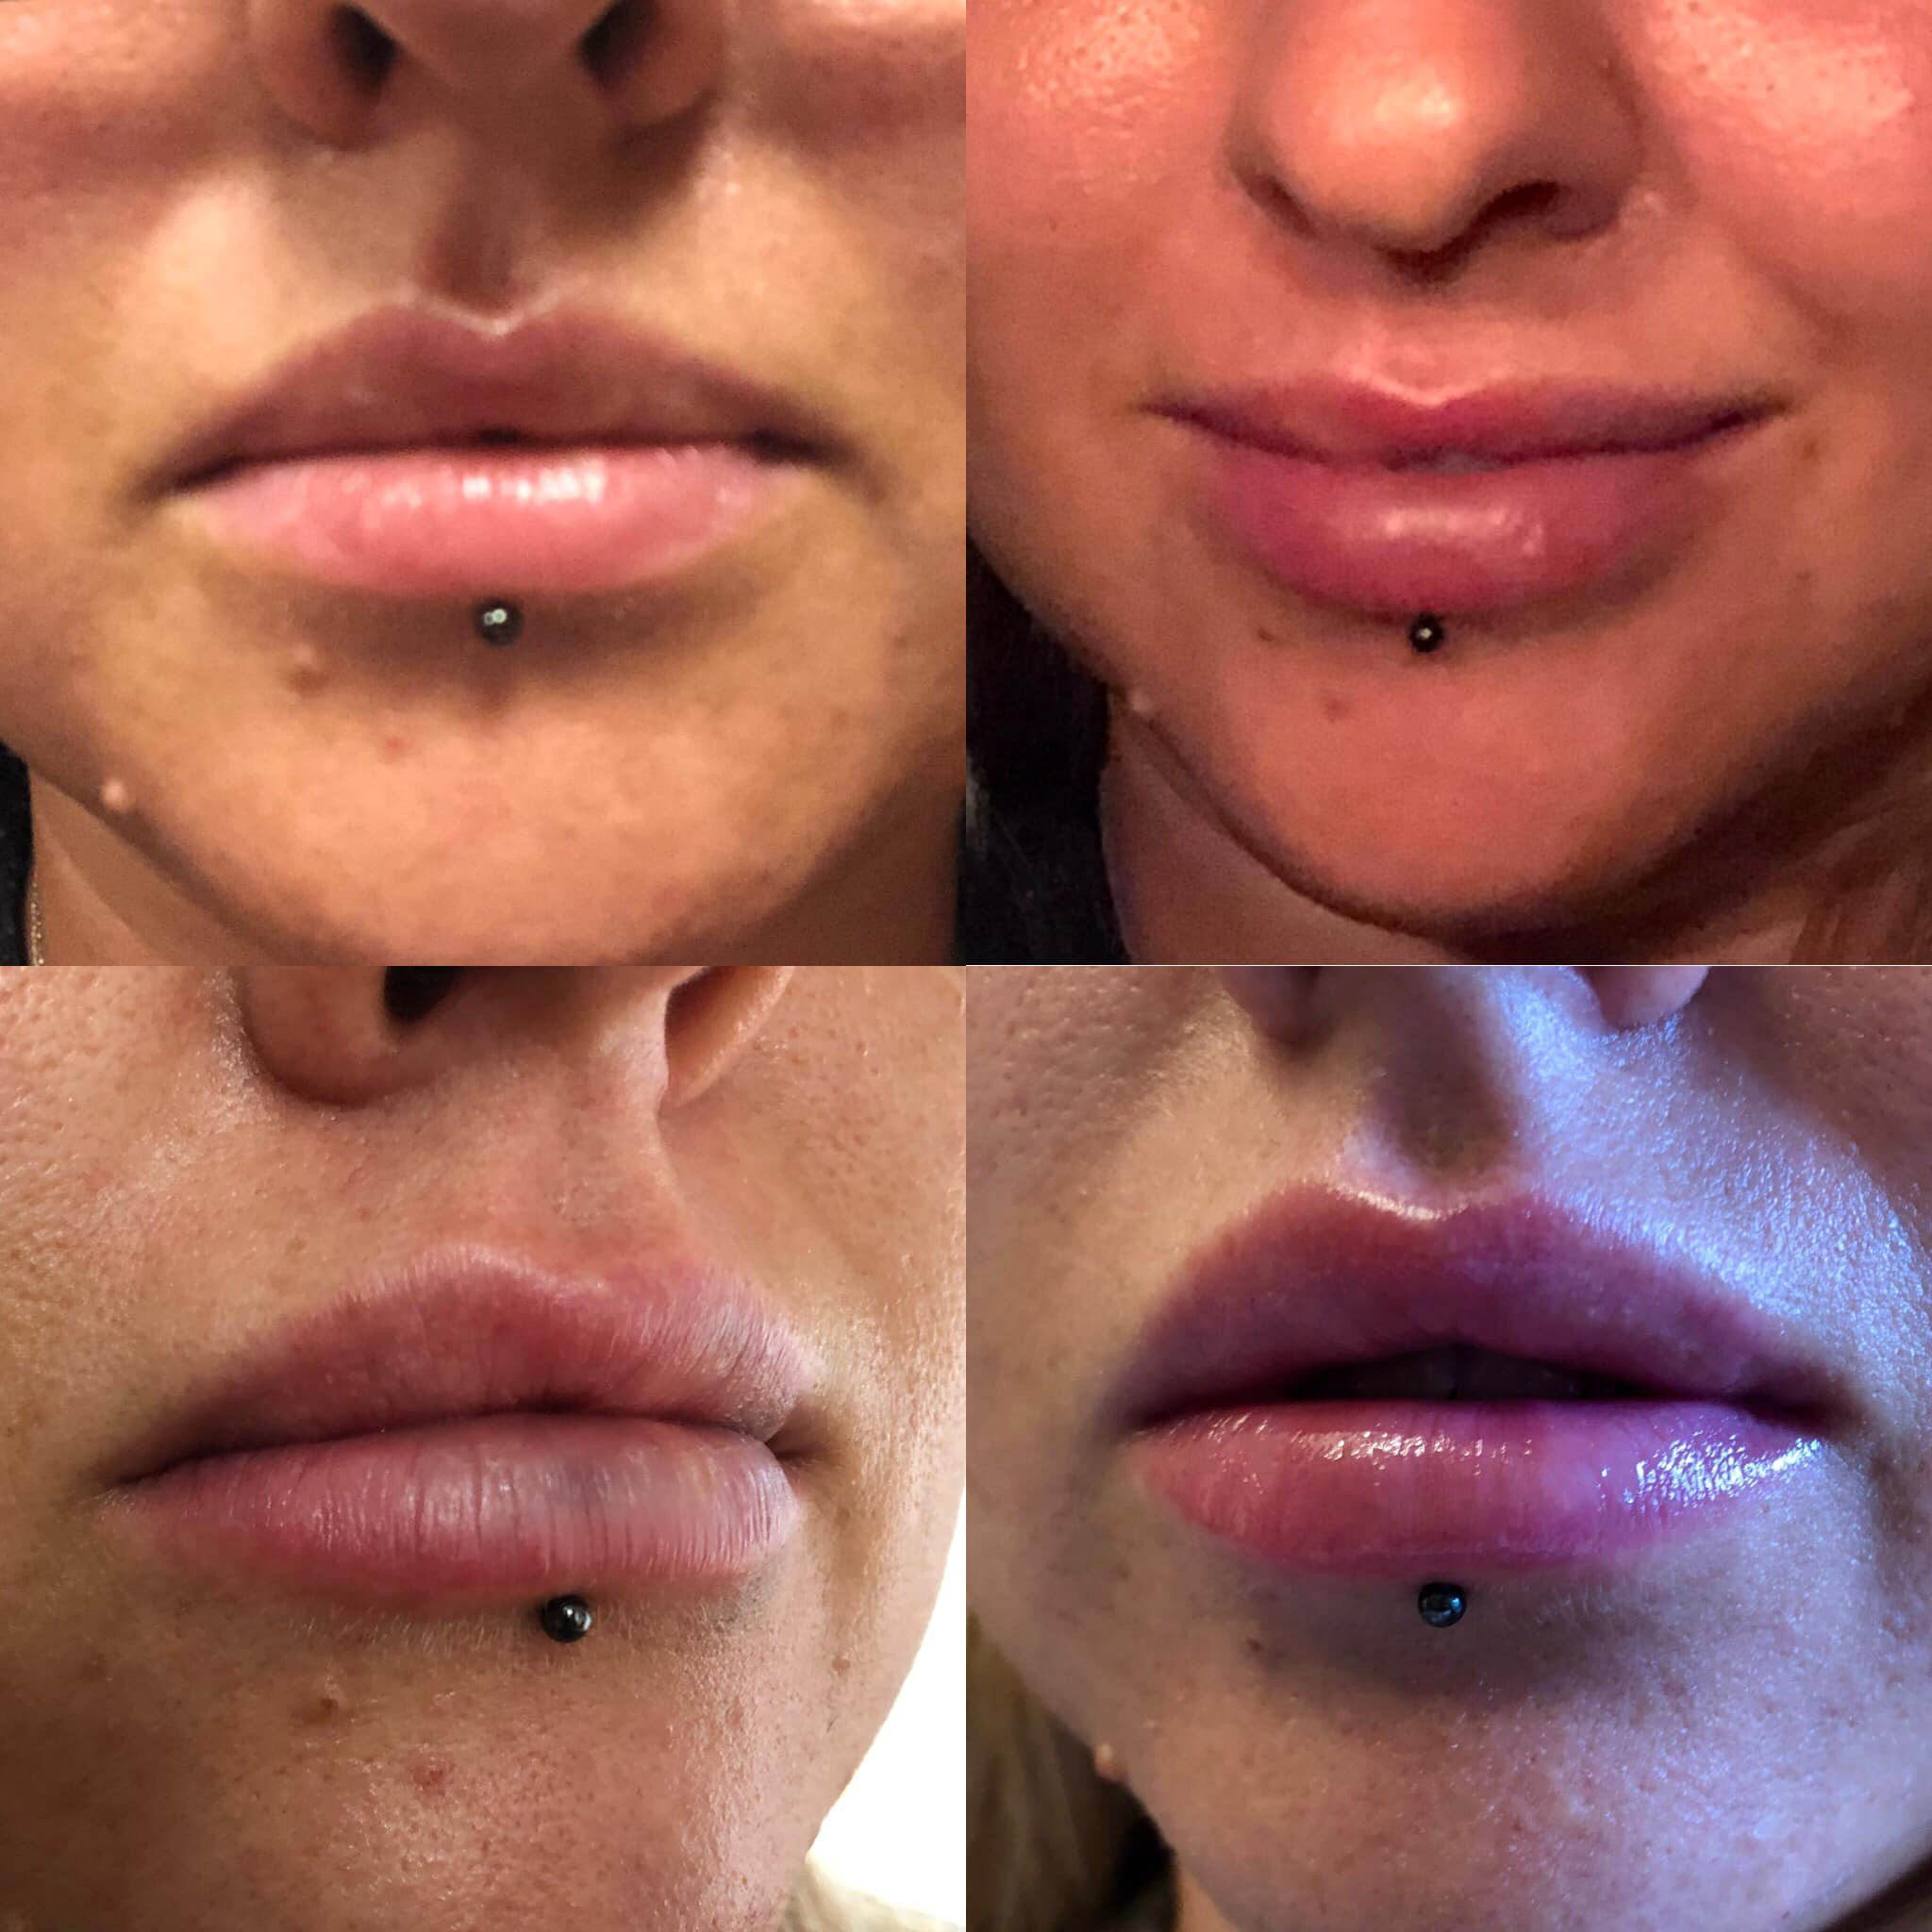 The process of lip filler from no filler, 0.5ml filler and 1.0ml